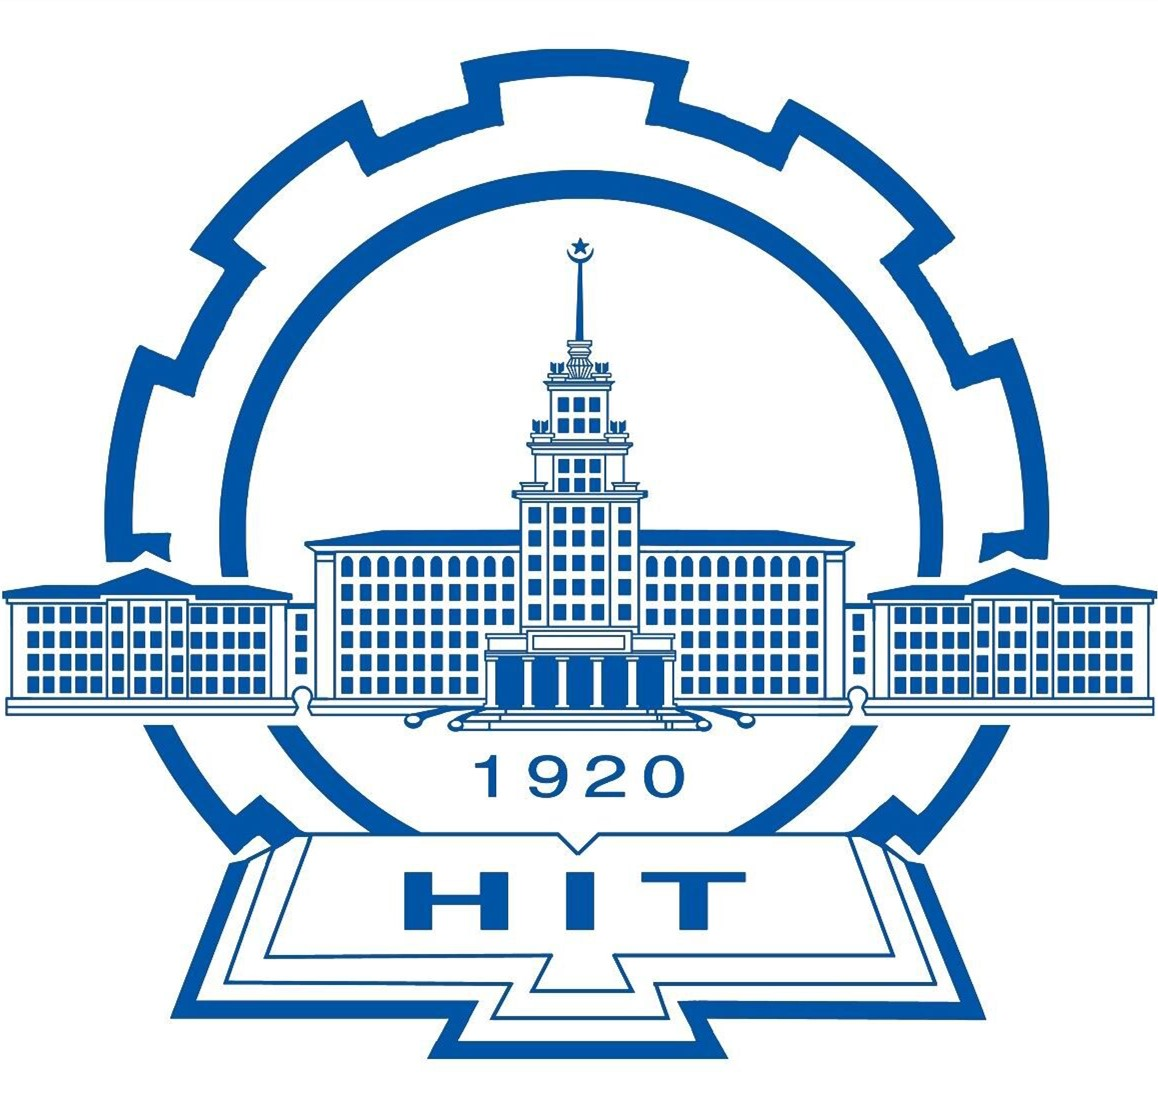 Harbin Institute of Technology